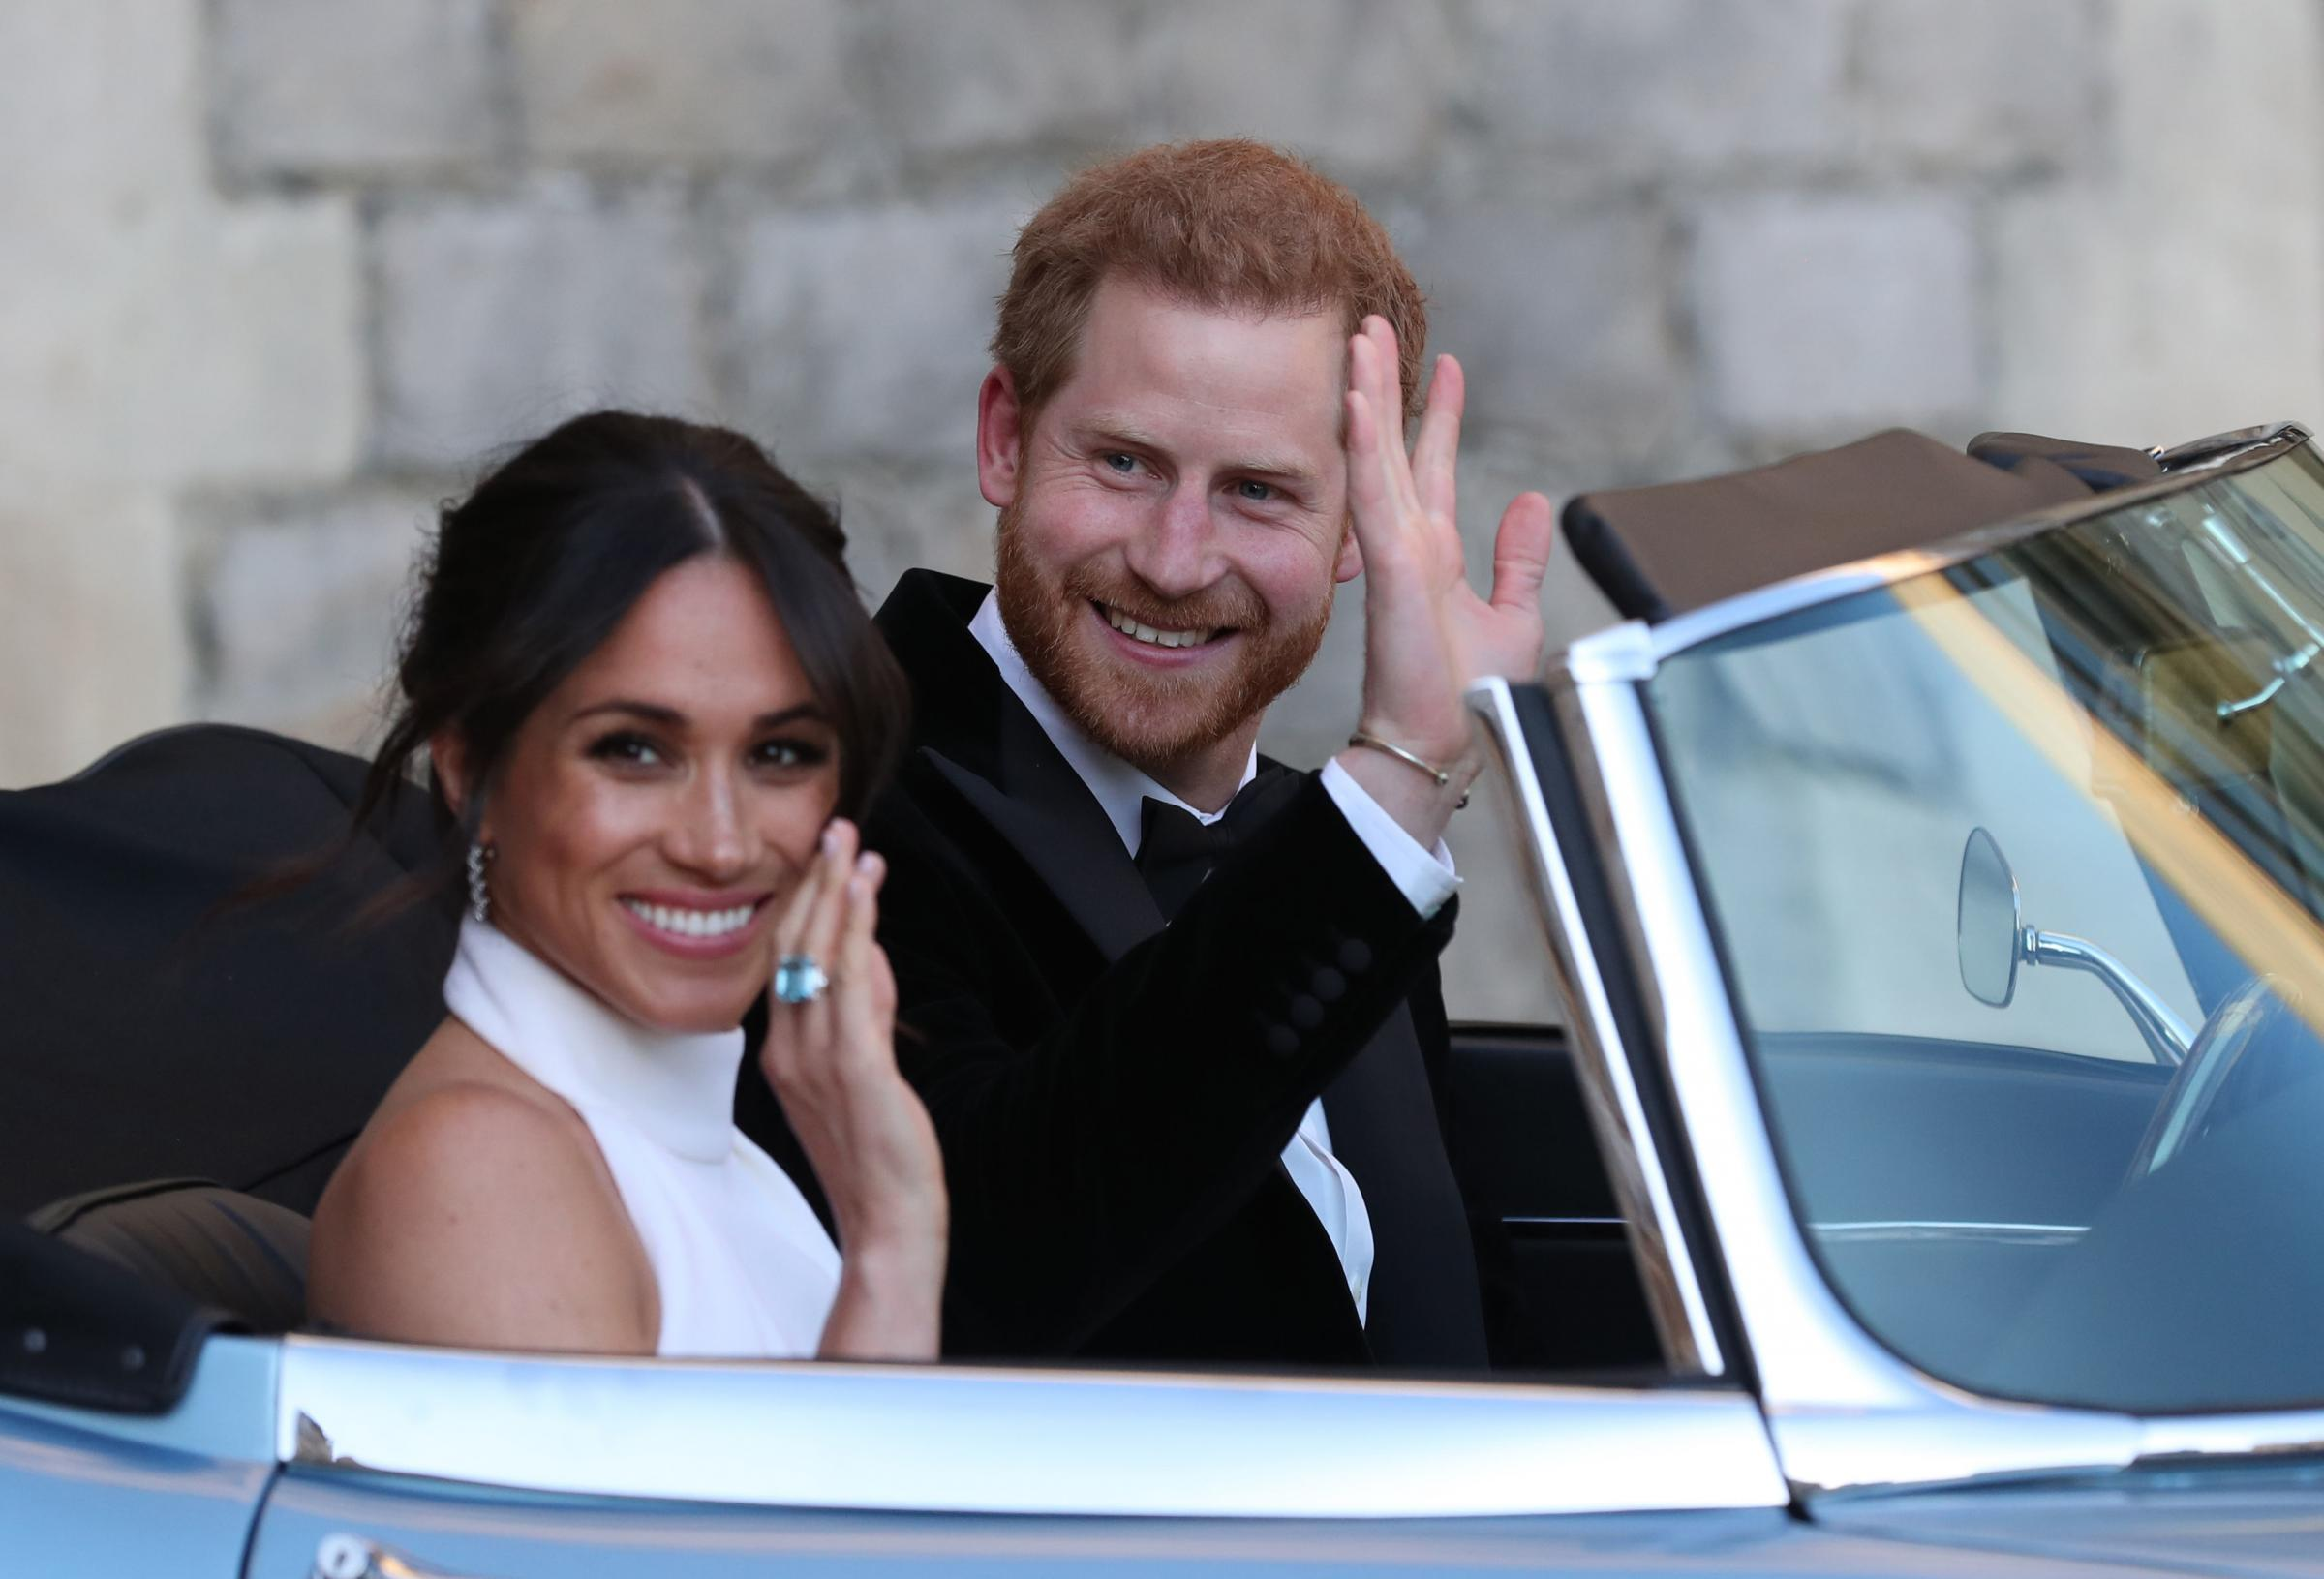 The newly married Duke and Duchess of Sussex, Meghan Markle and Prince Harry, leaving Windsor Castle after their wedding to attend an evening reception at Frogmore House, hosted by the Prince of Wales. PRESS ASSOCIATION Photo. Picture date: Saturday May 1